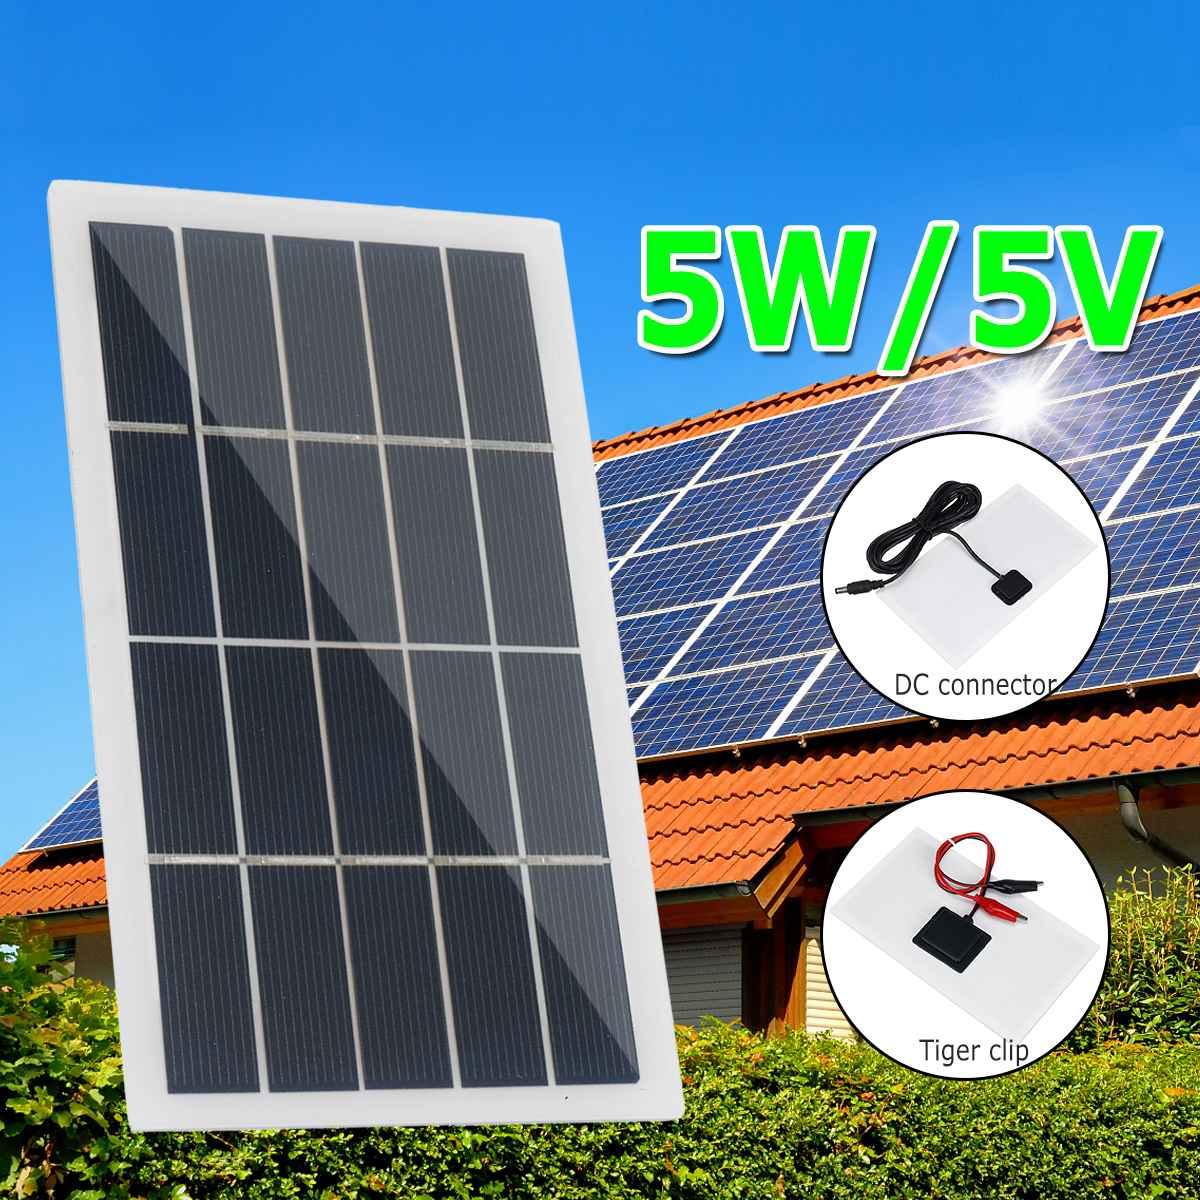 5W 10W 5V Portable DC Solar Panel Polysilicon Fast Charger Outdoor Climbing Travel Emergency Power DIY Solar Charger